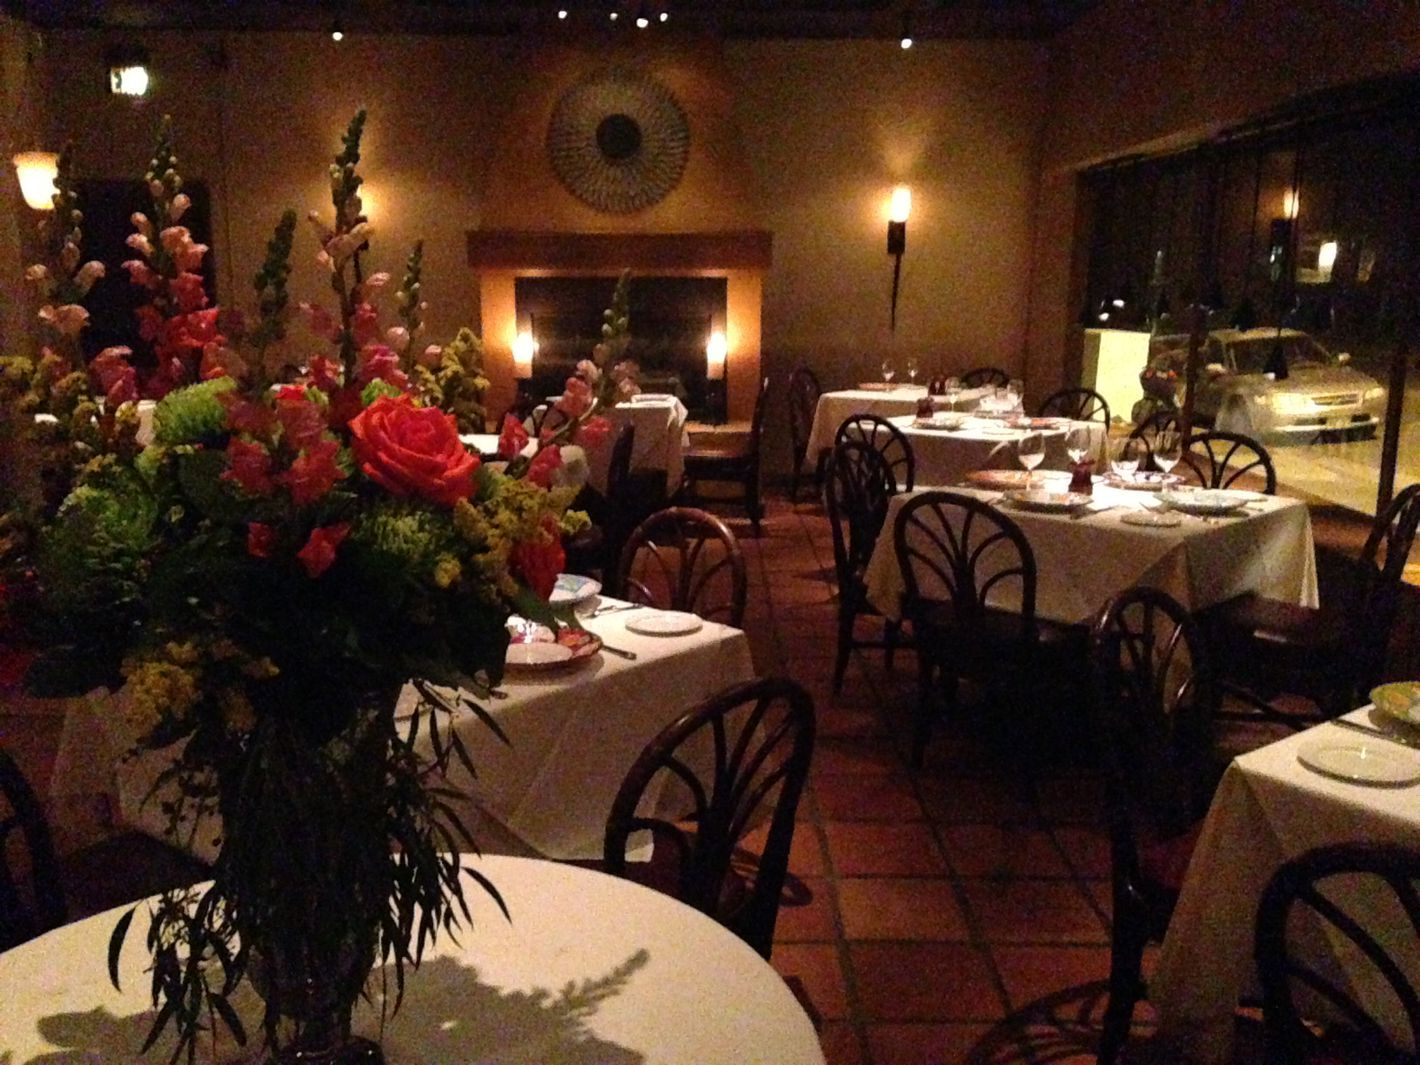 From Sit Down Multi Course Meals To Sdy Service These Restaurants Deliver The Flavors Of Italy Denver Area Diners